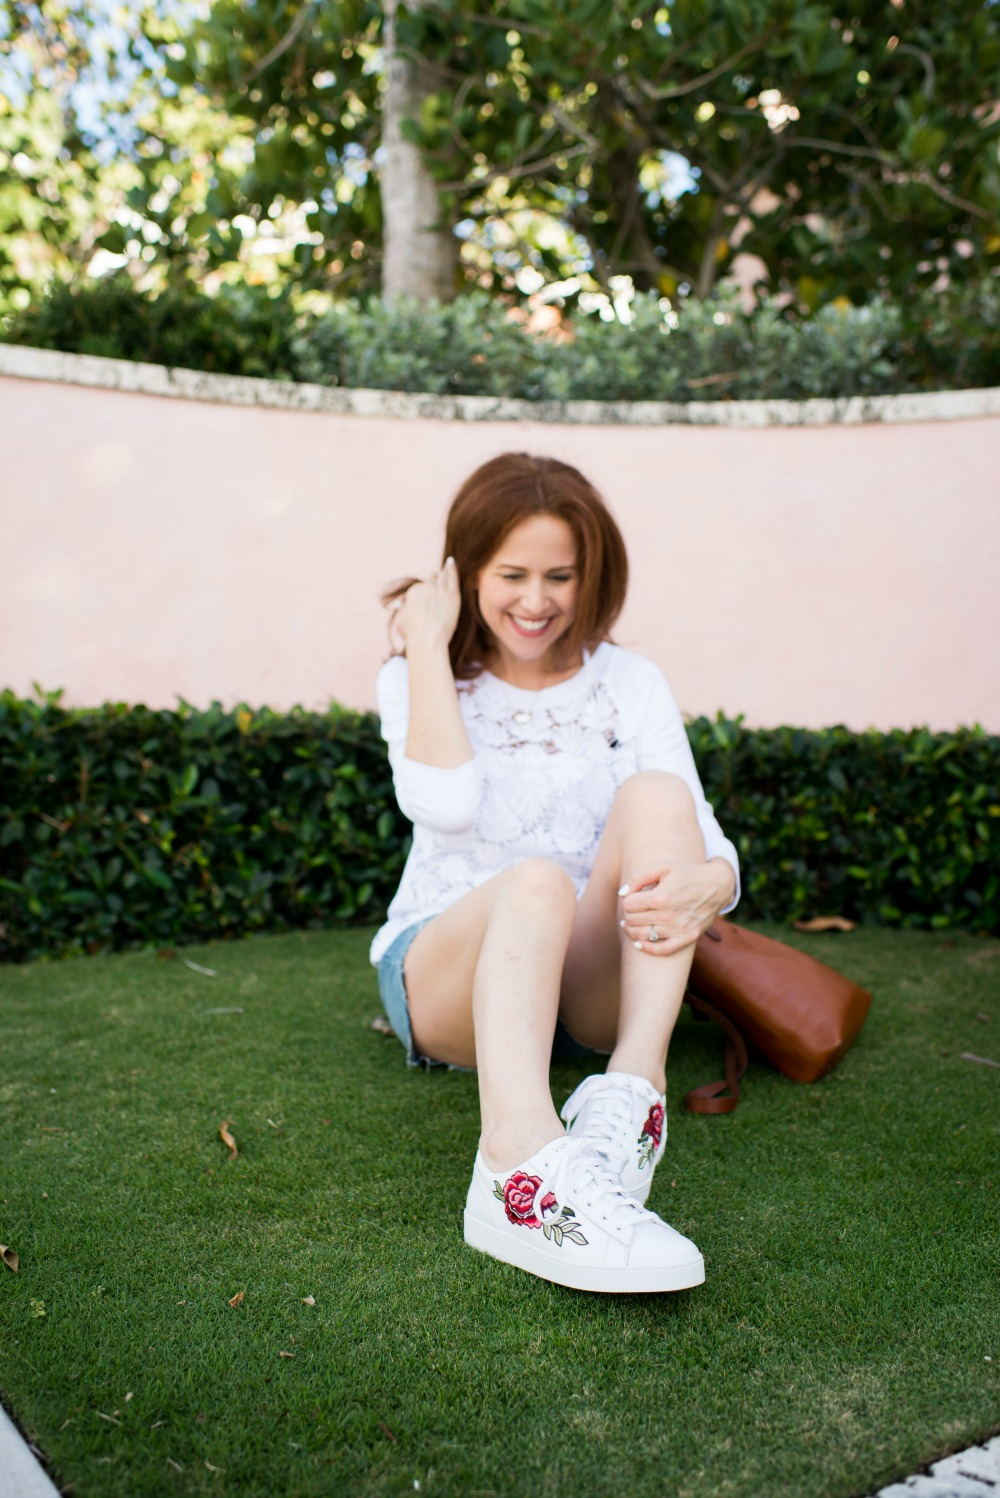 Easy spring outfit ideas // the modern savvy, a florida life & style blog - Spring Lace Sweatshirt by popular Florida style blogger The Modern Savvy